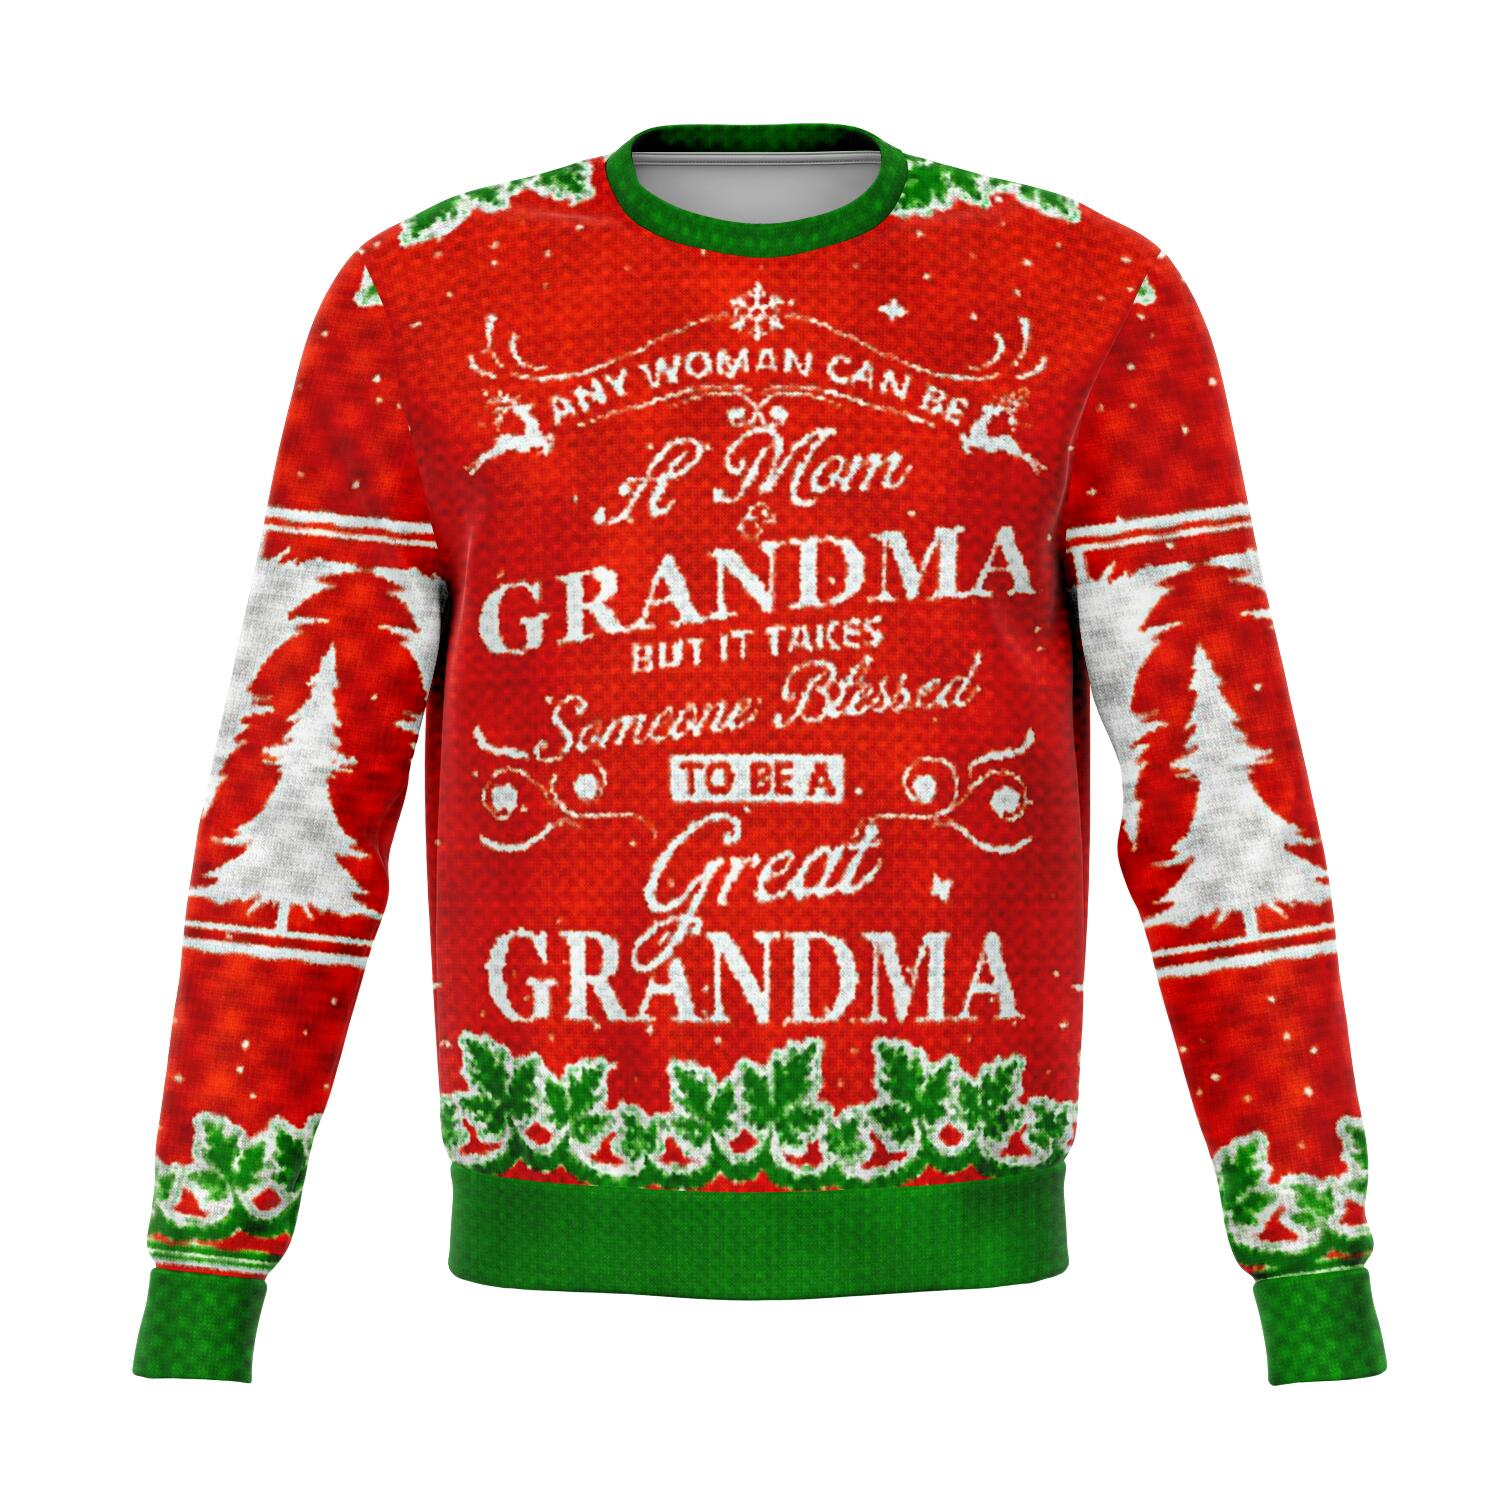 any woman can be a mom grandma but it takes someone blessed to be a great grandma UGLY CHRISTMAS SWEATER New